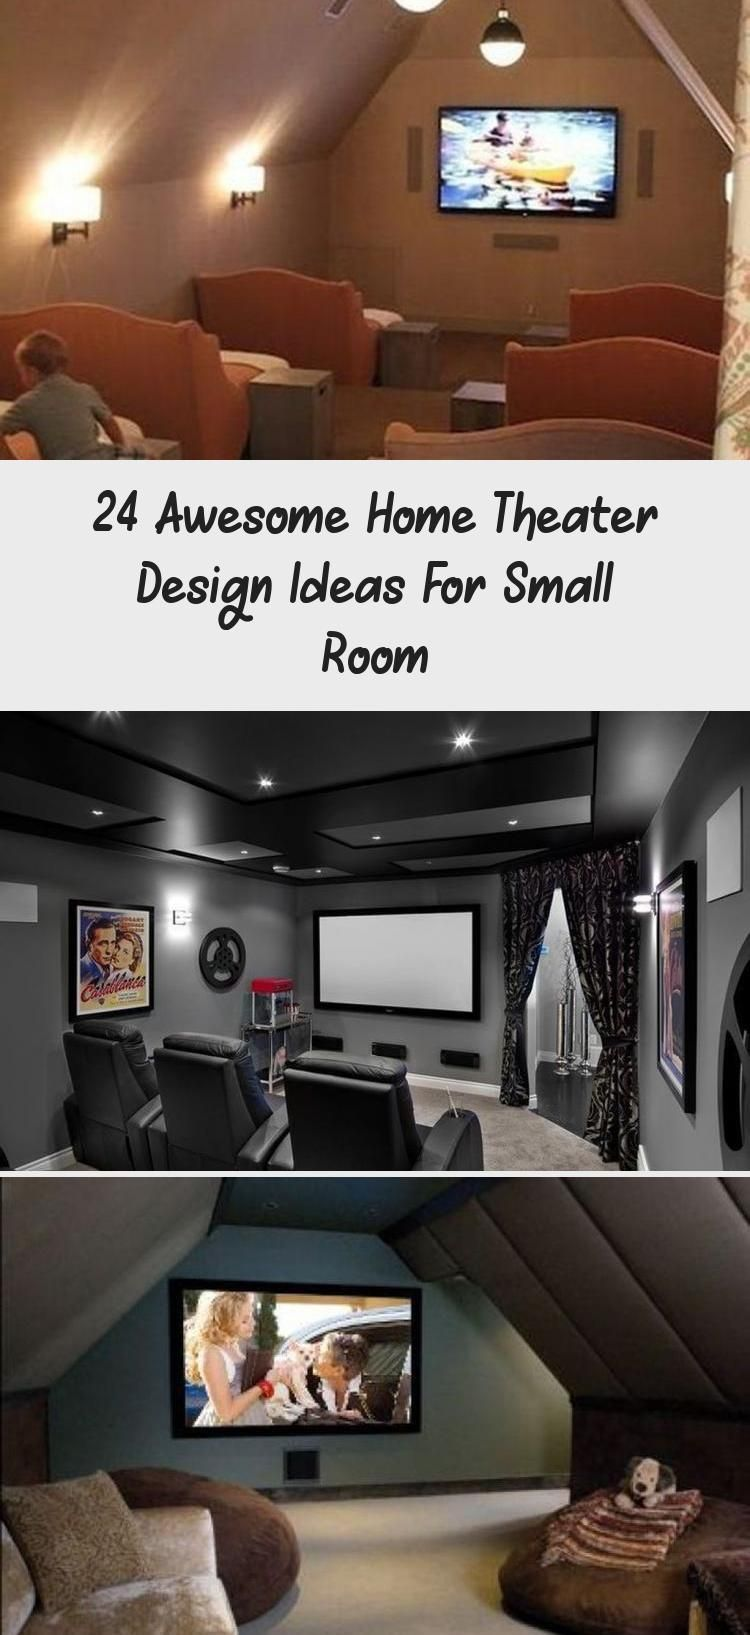 24 Awesome Home Theater Design Ideas For Small Room Design Home Design 2020